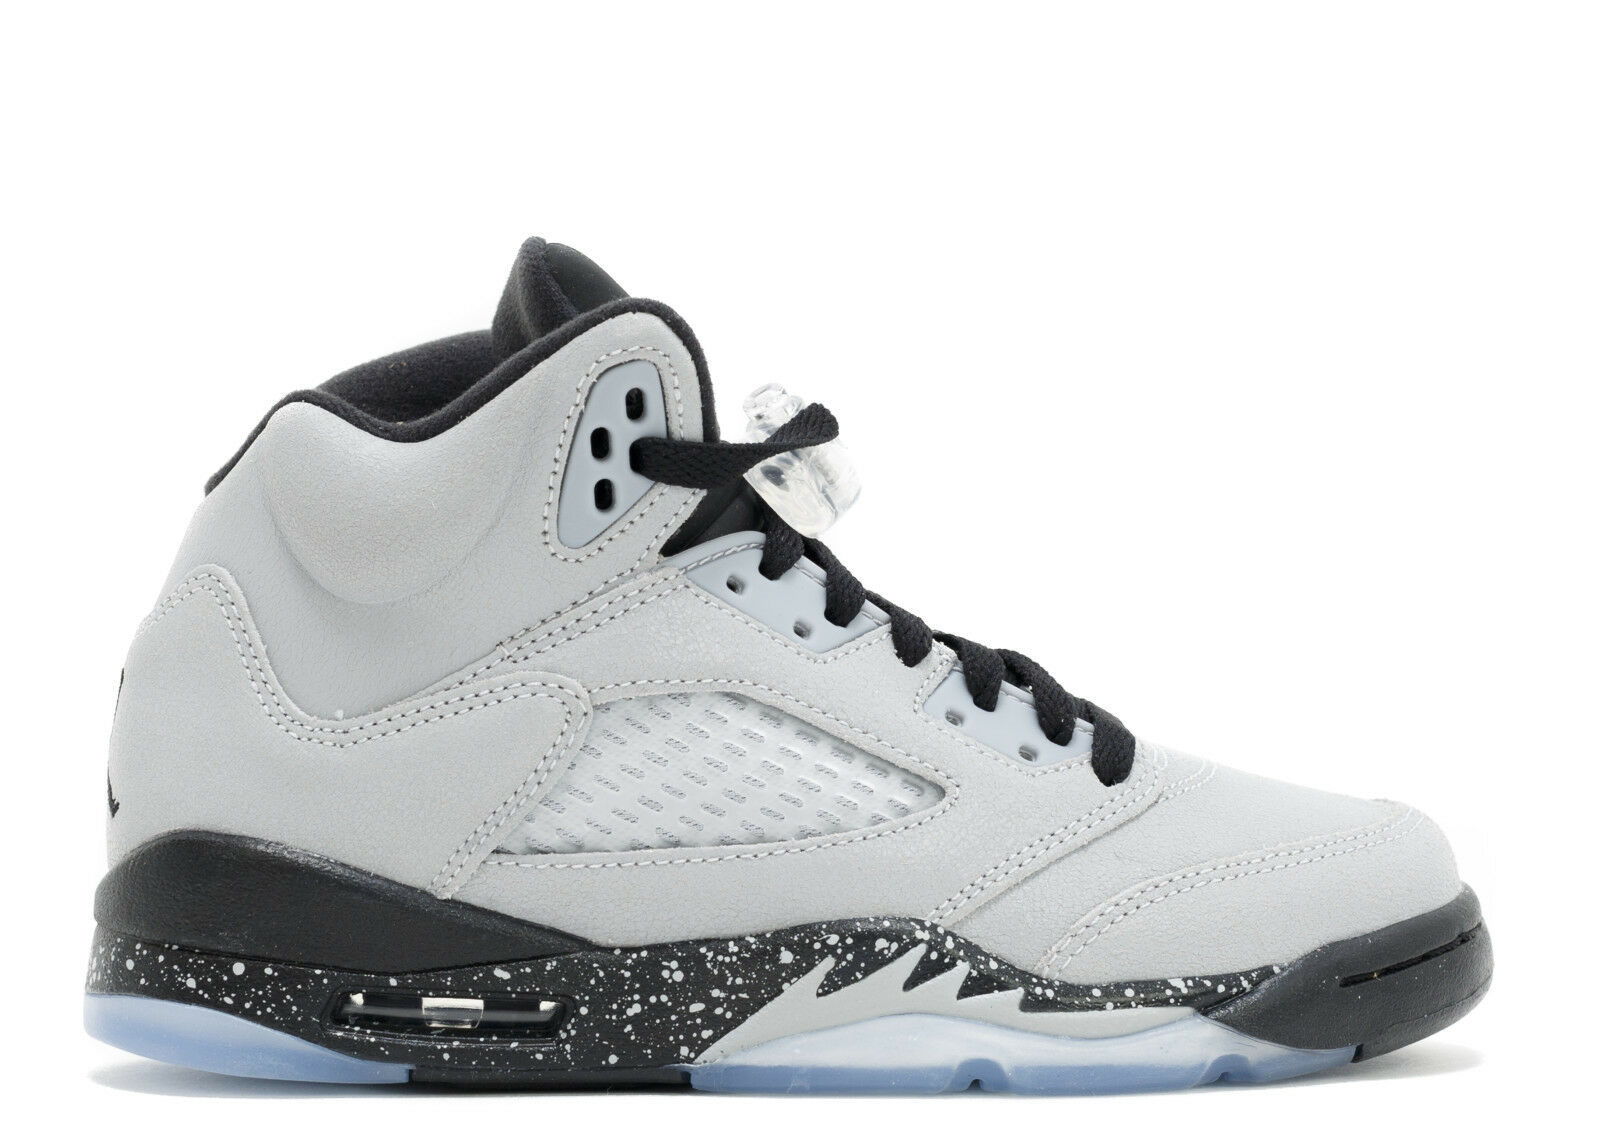 AIR JORDAN RETRO 5 V YOUTH 440892-008 CEMENT BRED WHITE BLACK RED GS BOYS NEYMAR Comfortable and good-looking